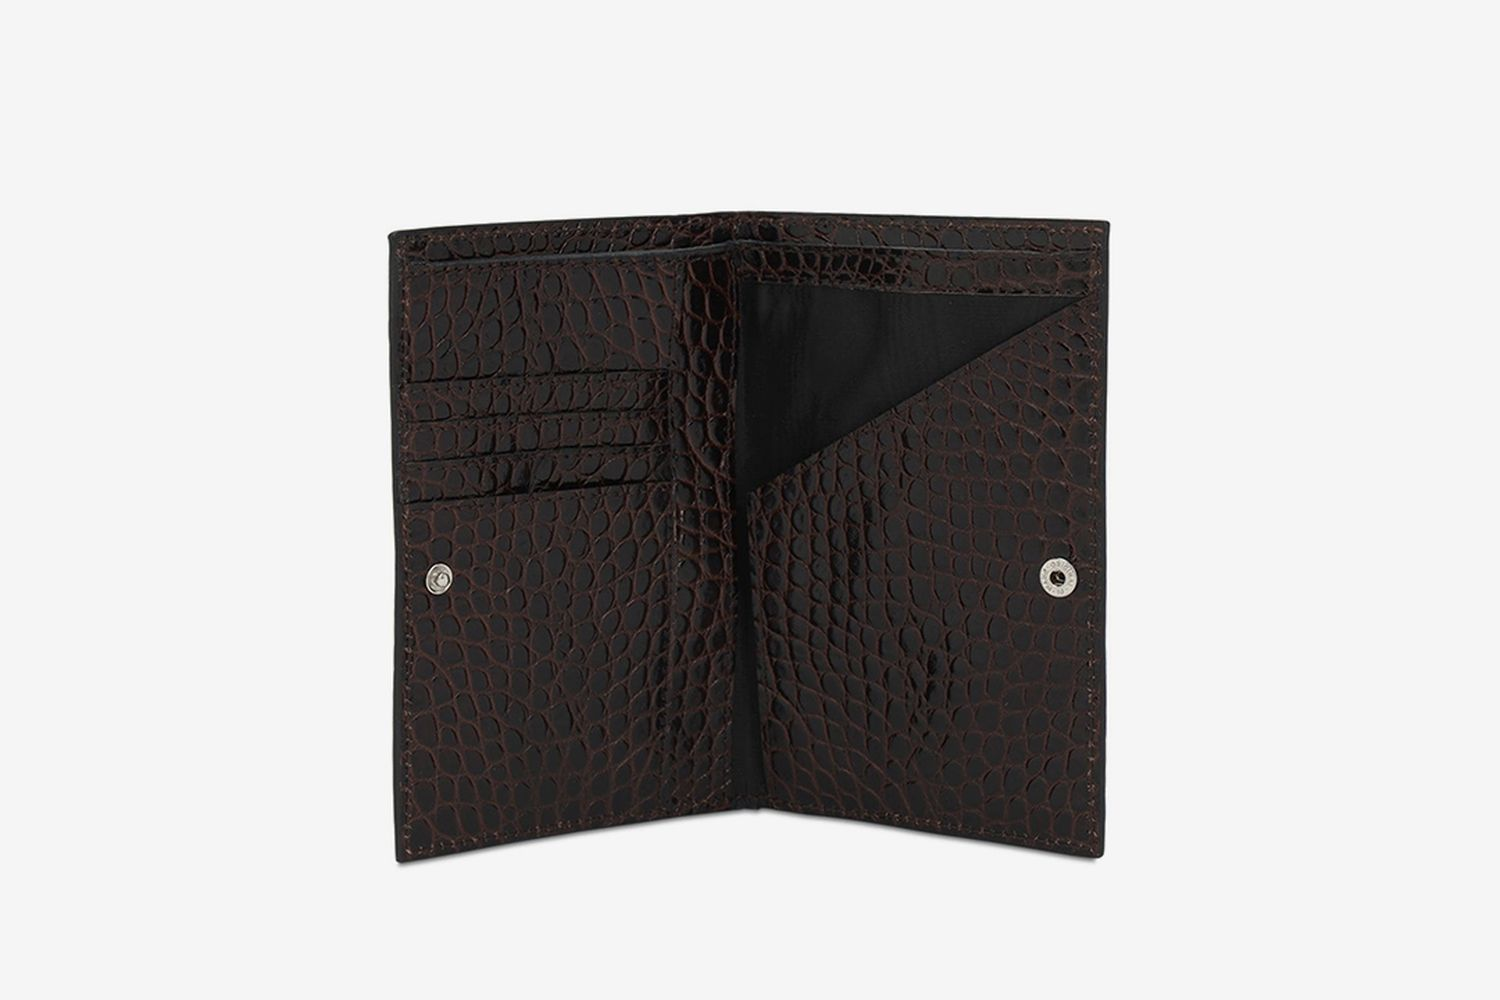 Croc Embossed Leather Wallet W/ Strap